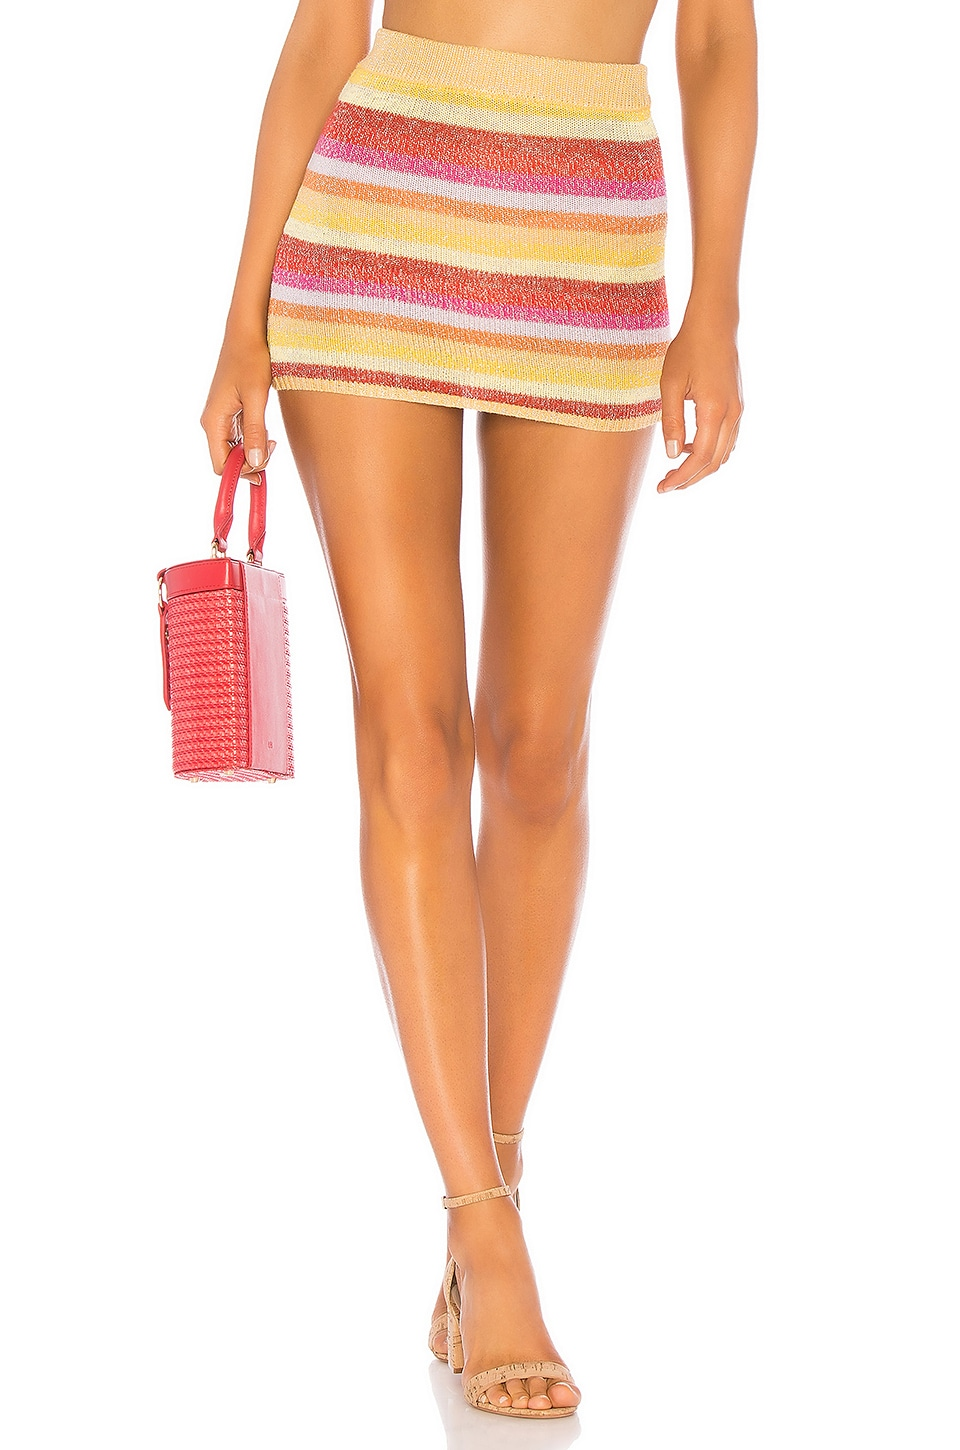 Lovers + Friends Sunset Sweater Skirt in Multi